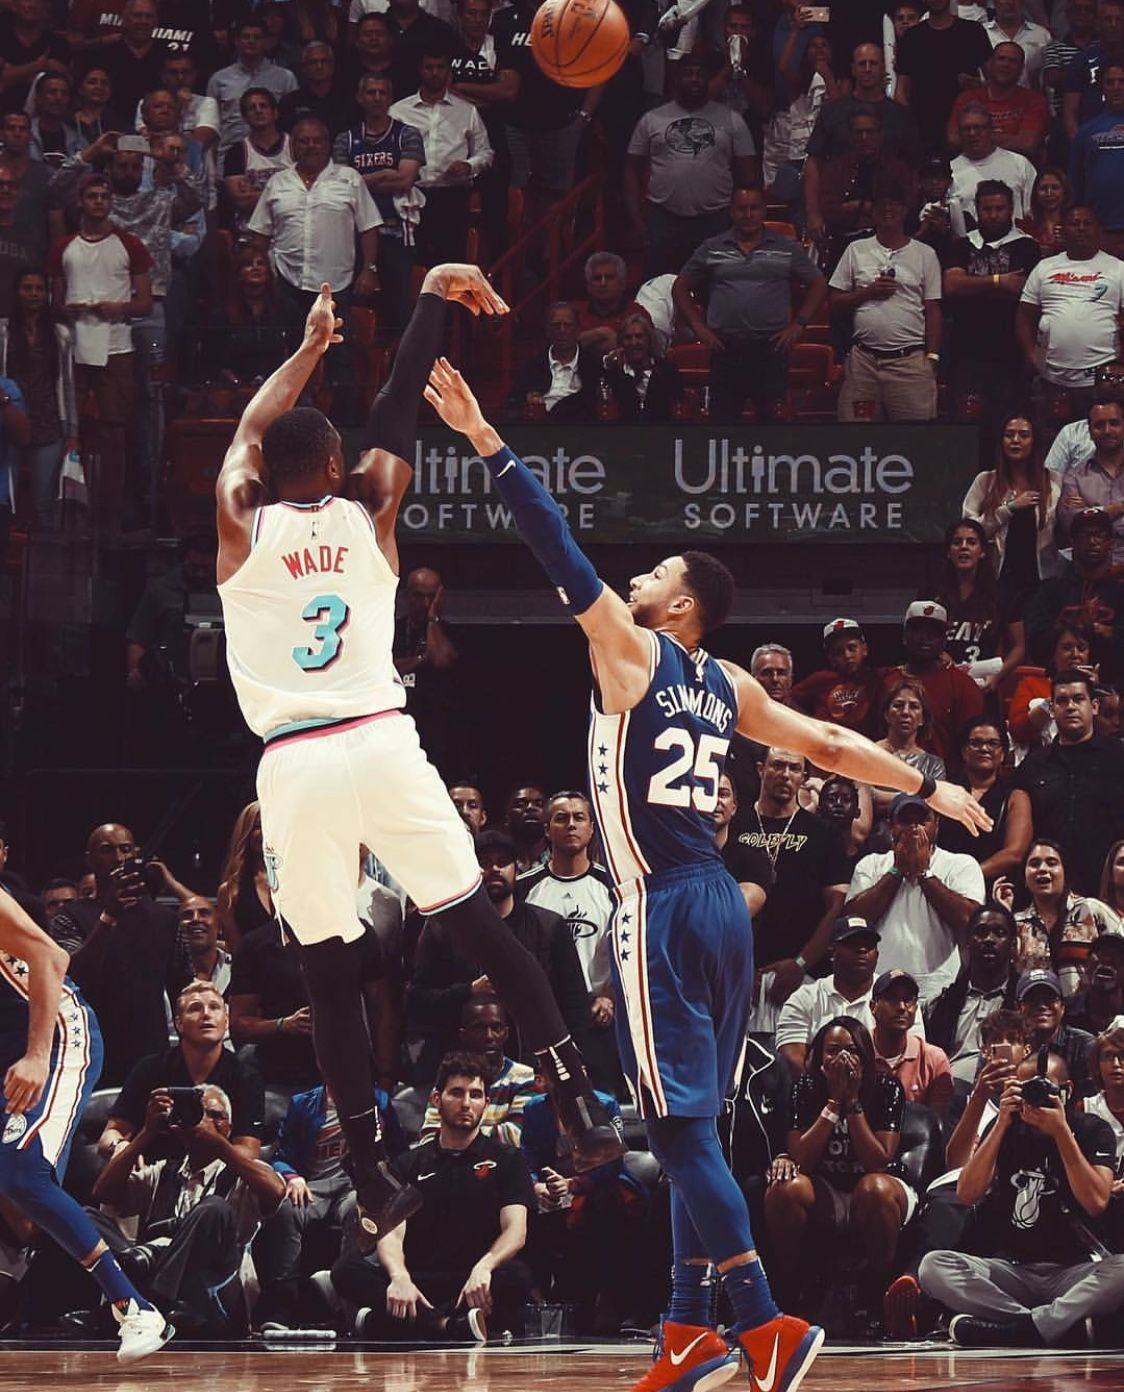 2c9213639e897 Dwayne Wade hitting the game winner | Basketball Legends ...